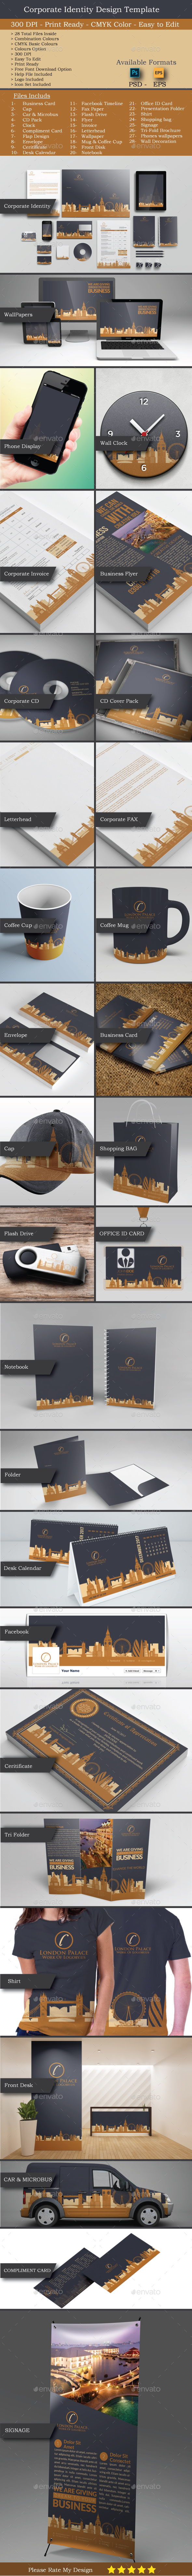 Modern Real Estate Identity Set - Stationery Print Templates